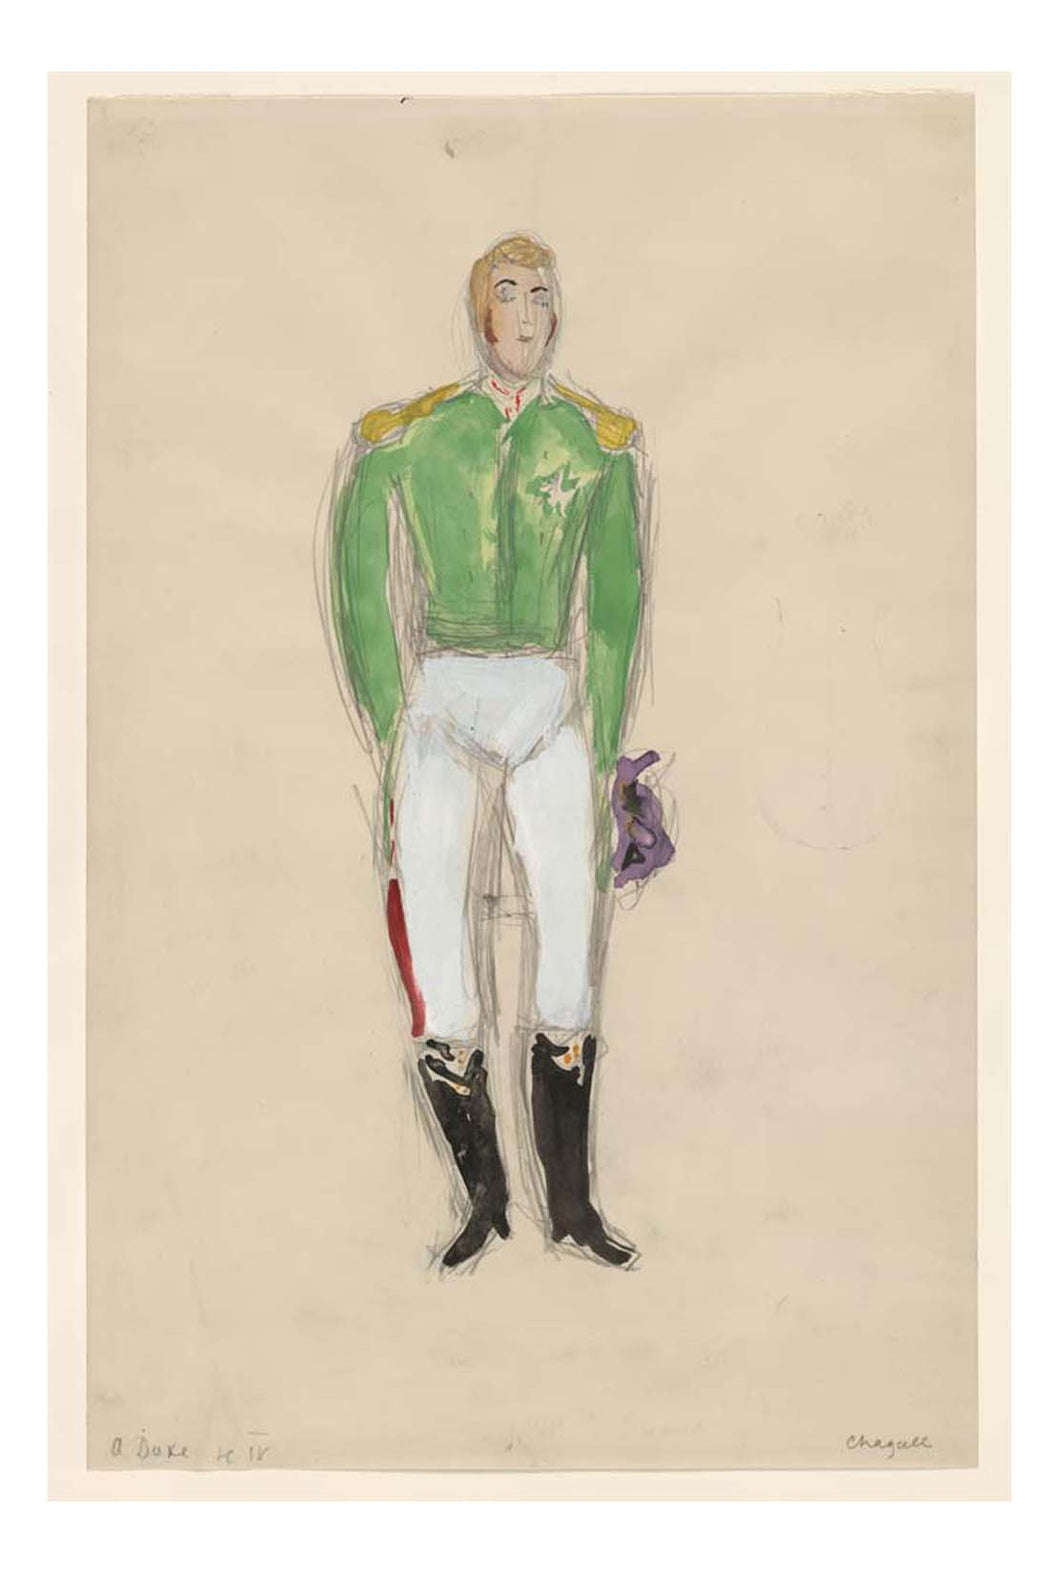 Marc Chagall - A Duke, costume design for Aleko, 16x12